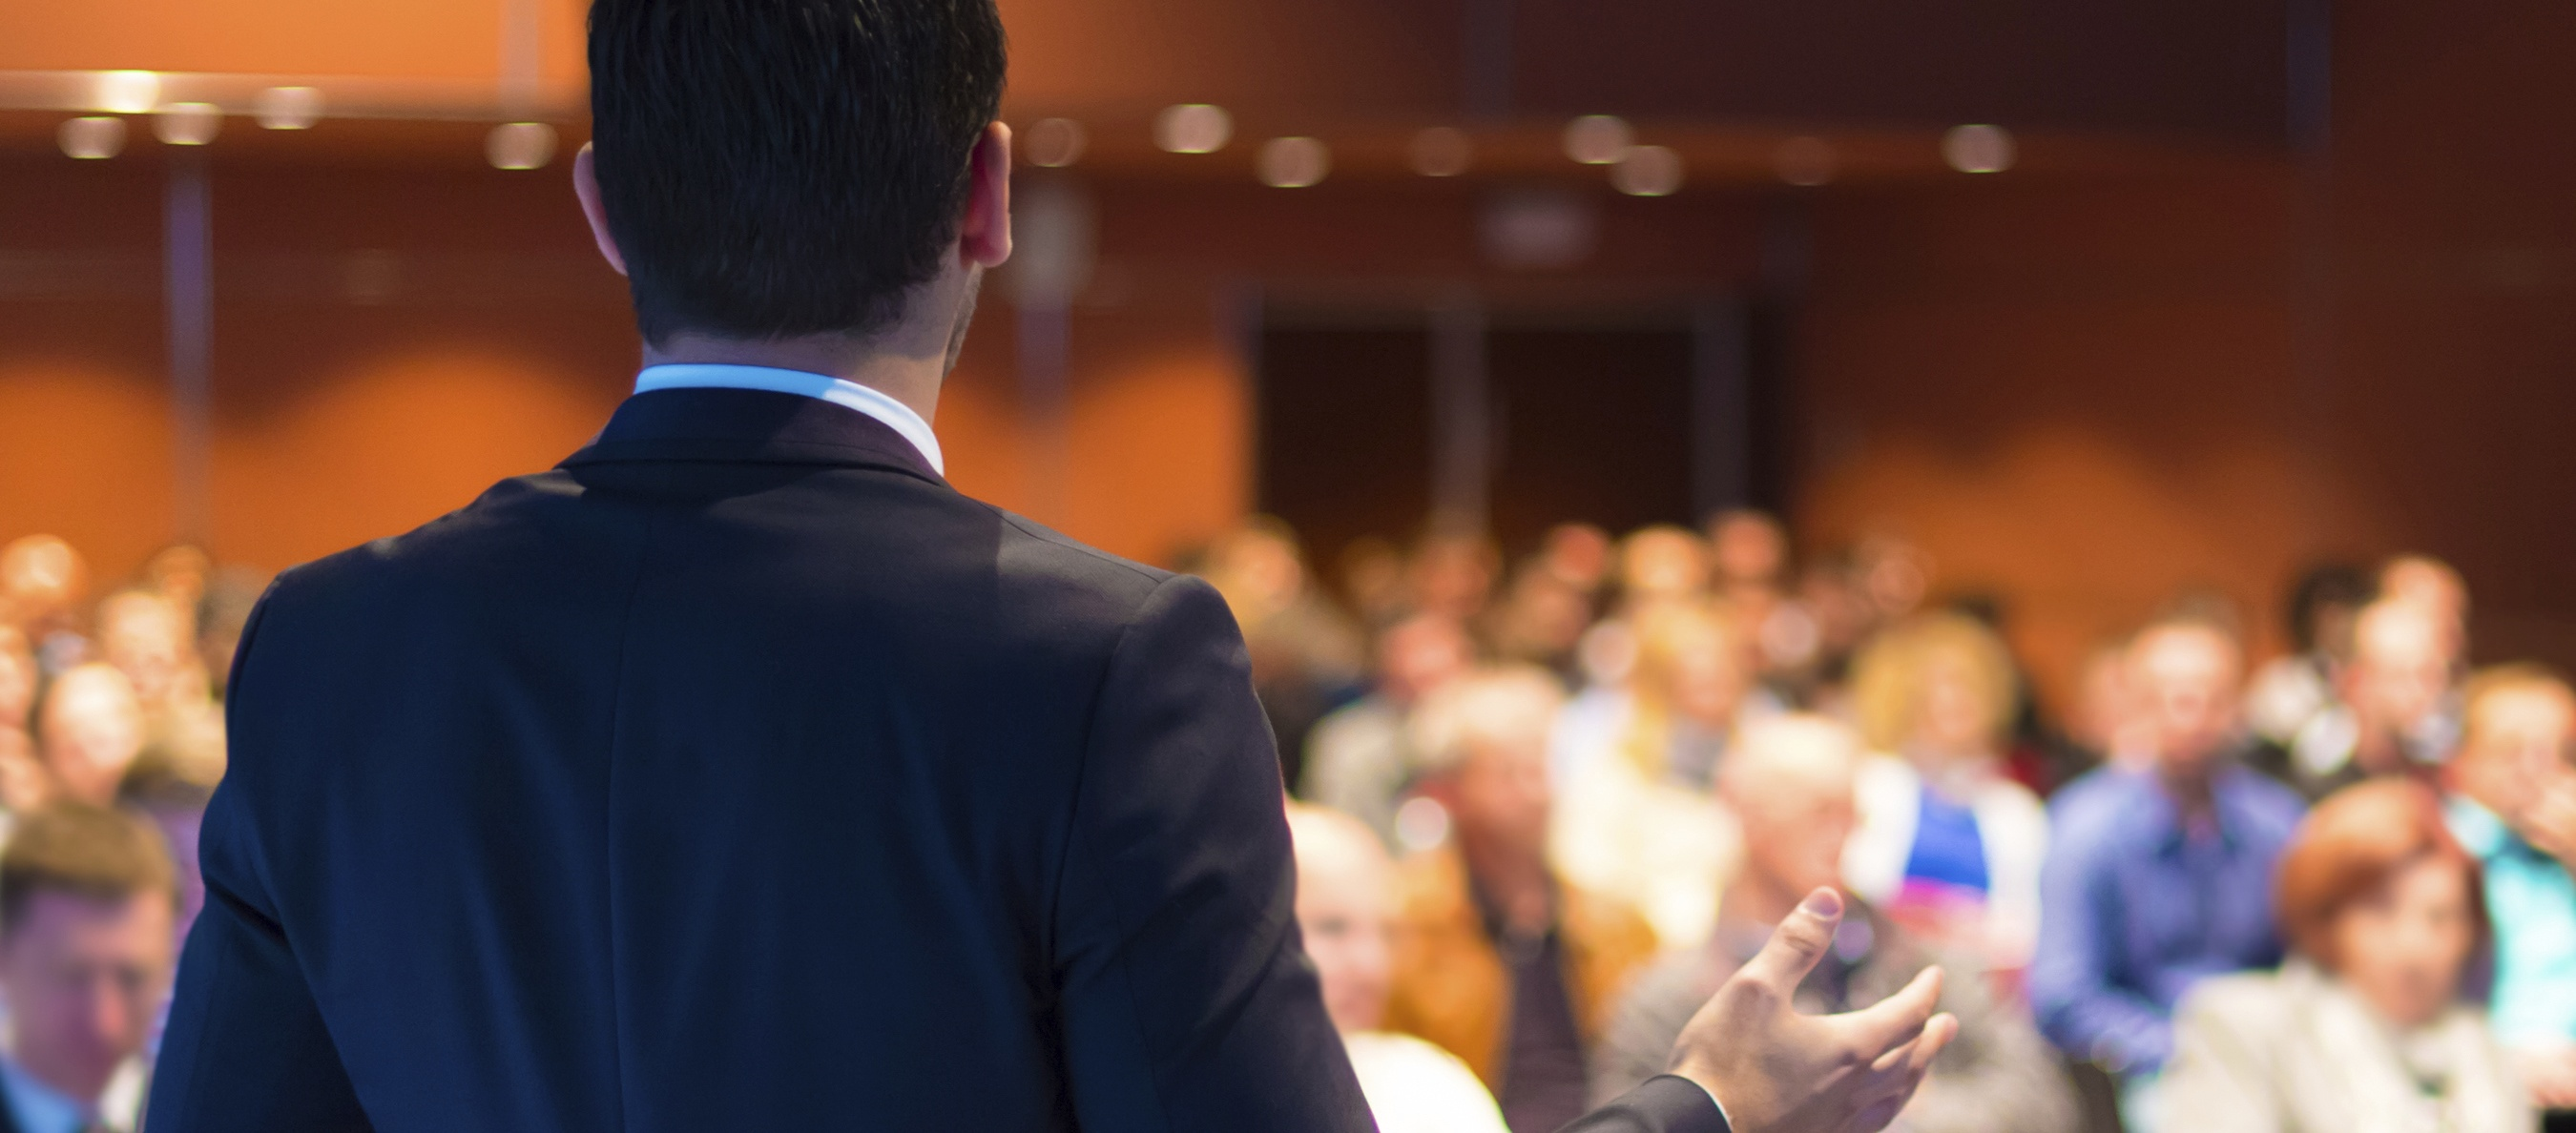 7 Sales Presentation Tips to Leave Your Audience Wanting More